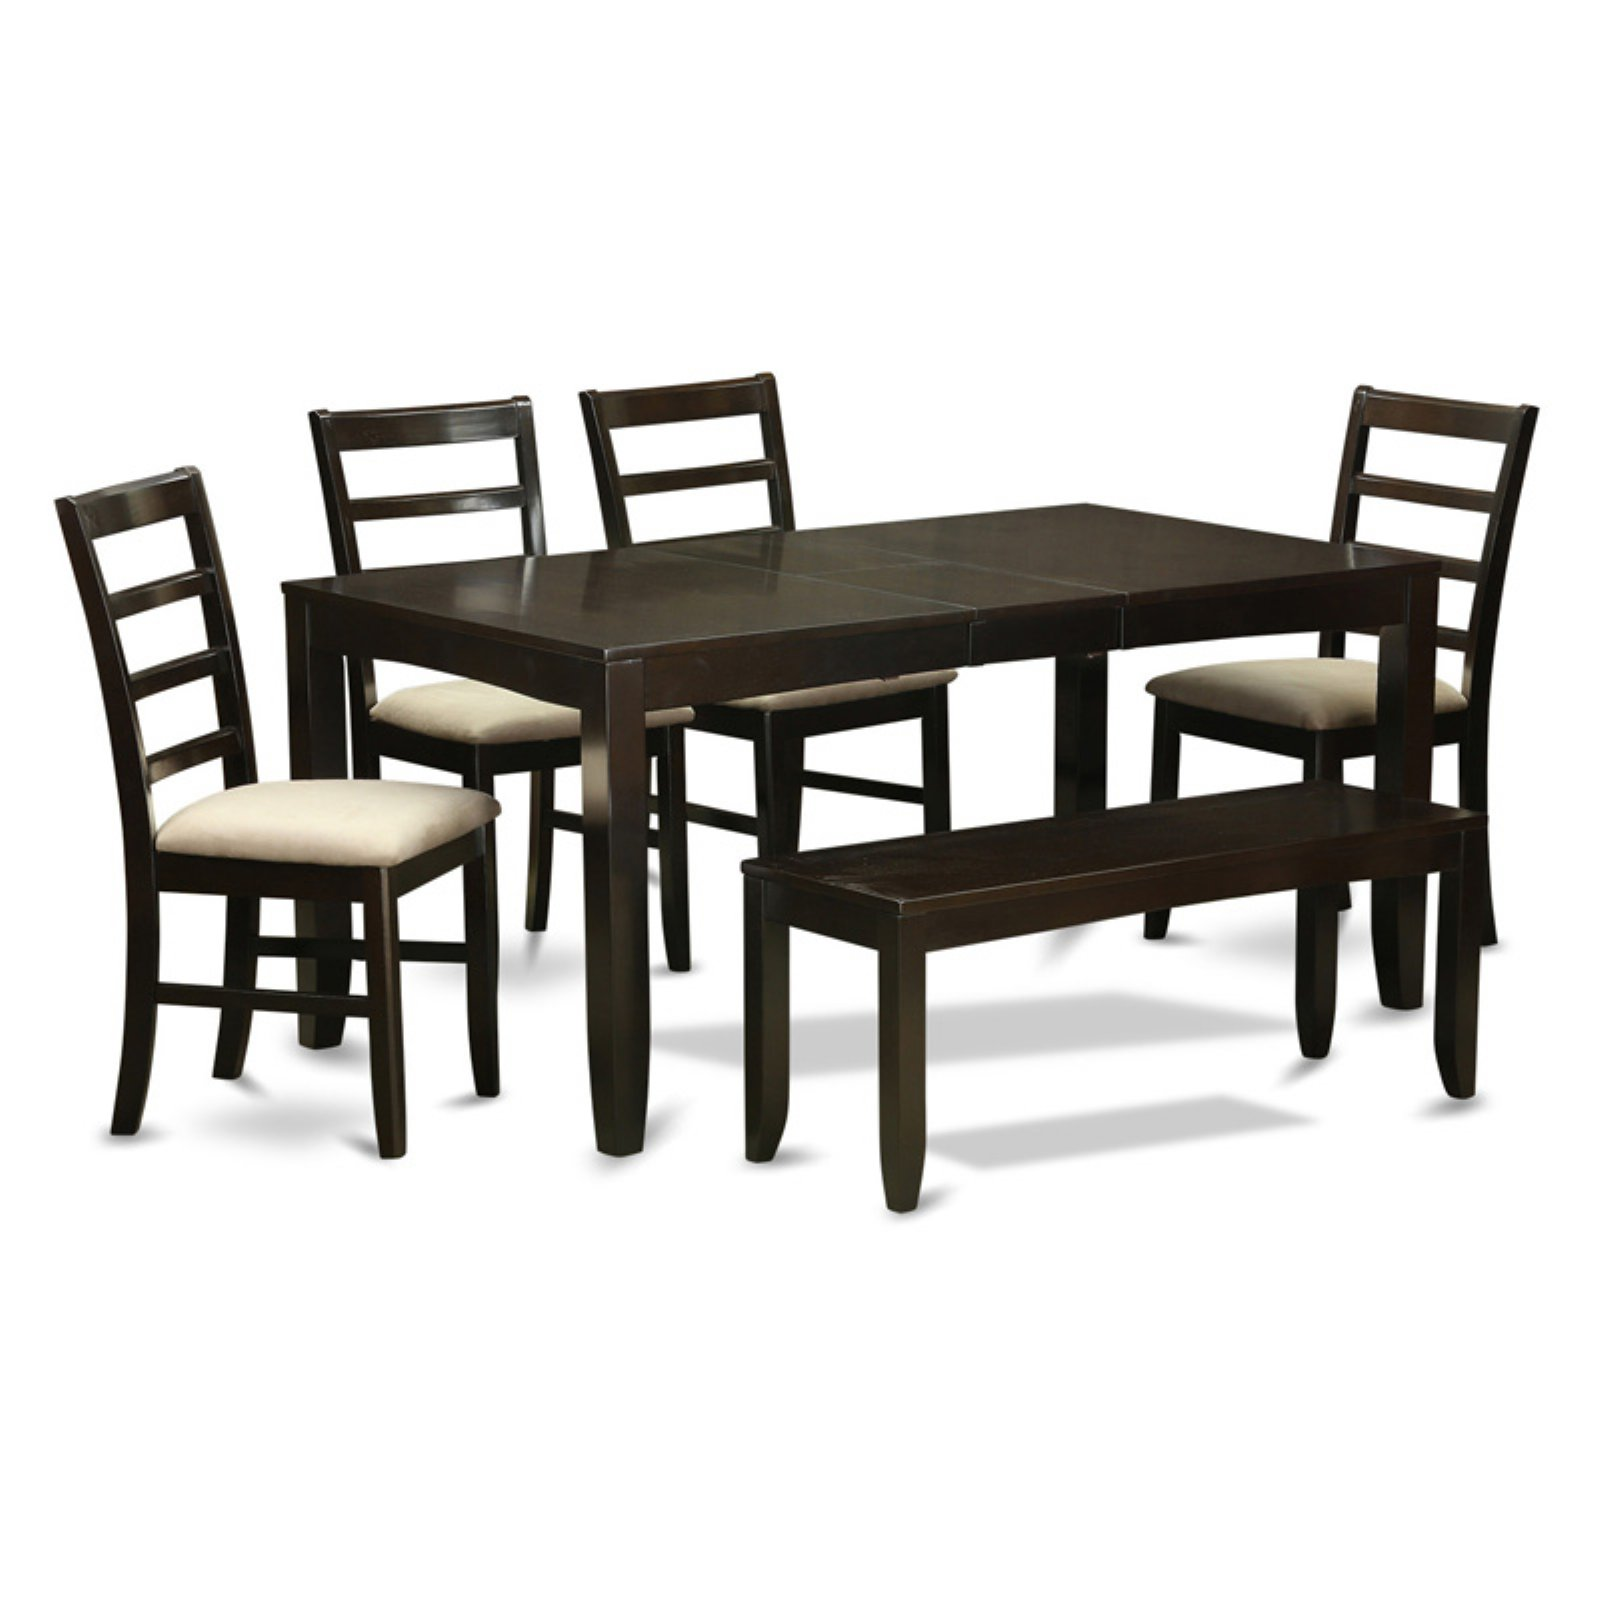 East West Furniture Lynfield 6 Piece Extension Dining Table Set with Parfait Chairs